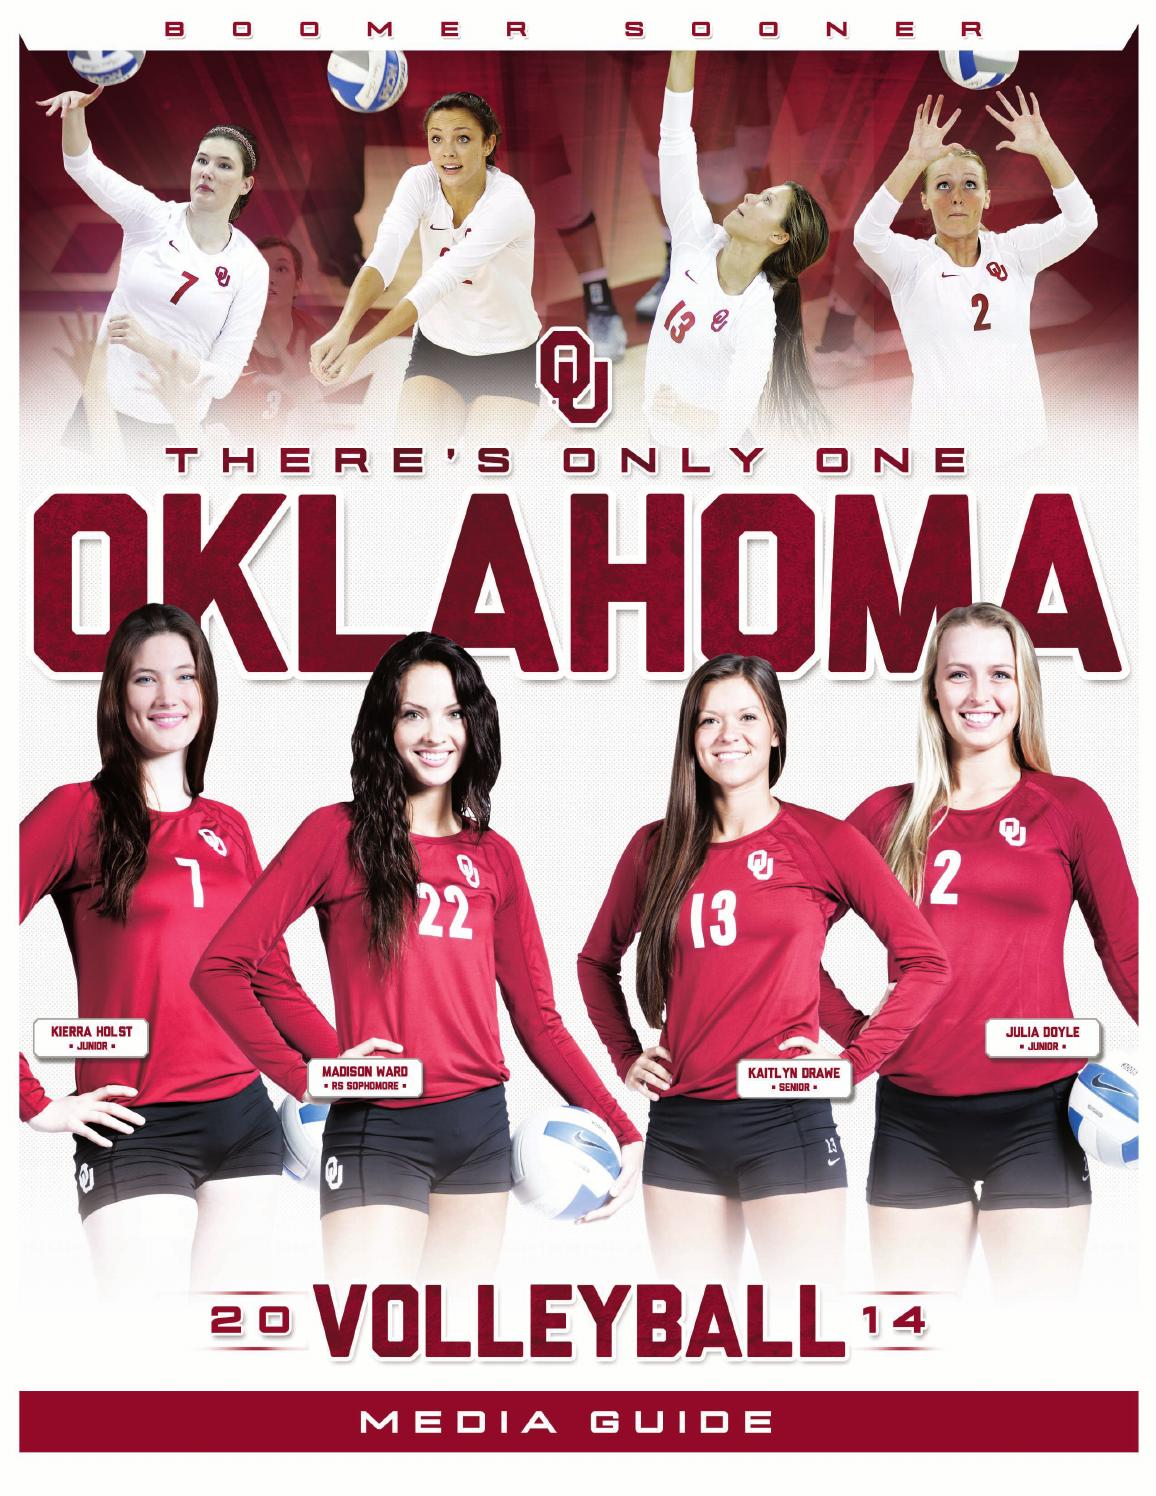 2014 Oklahoma Volleyball Media Guide By OU Athletics